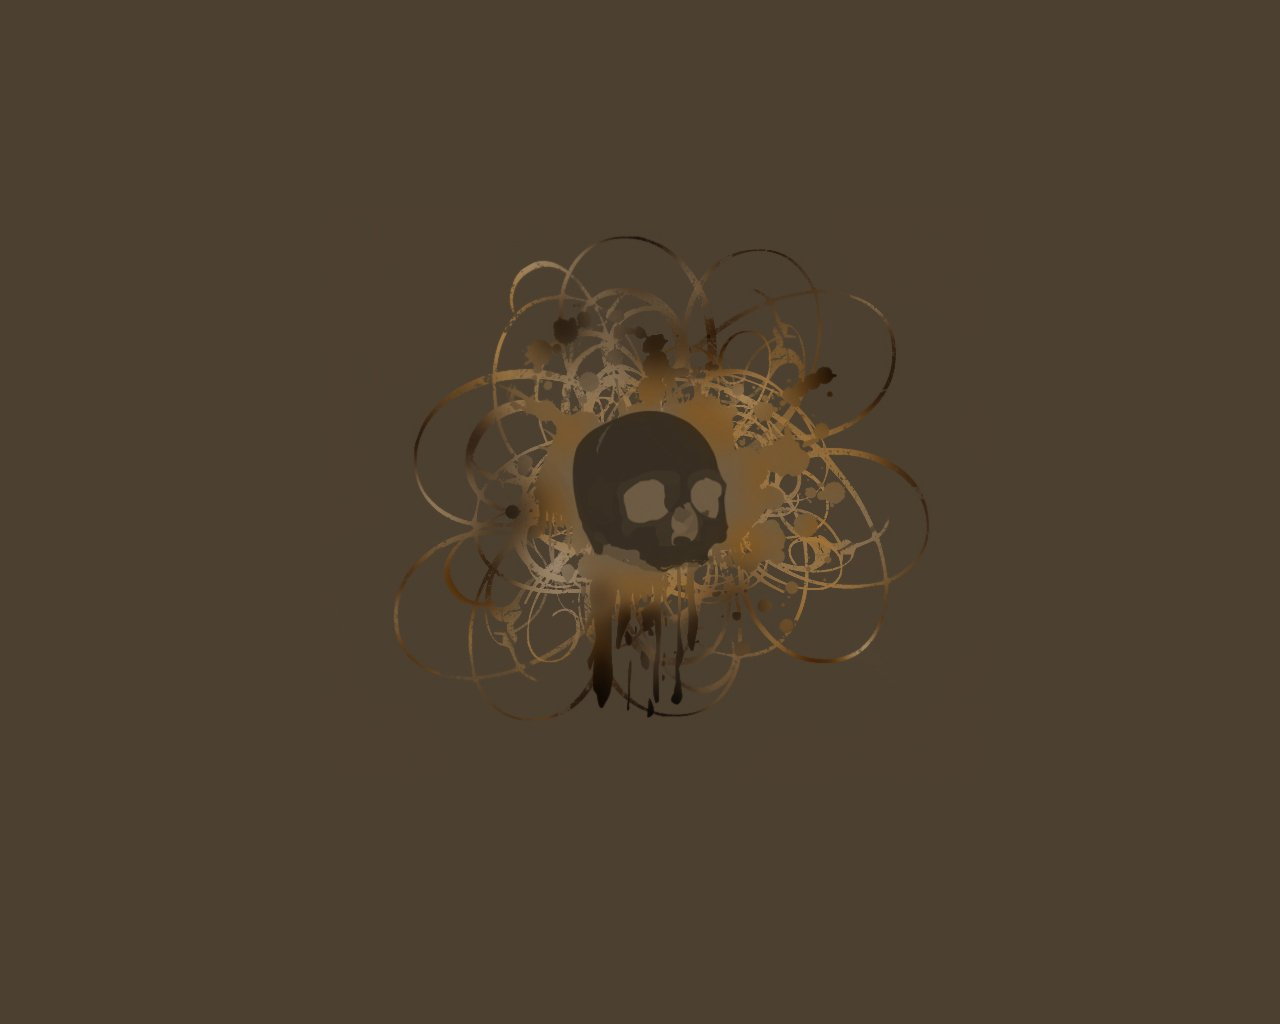 Desktop wallpaper cool wallpaper Brown Skull 1280x1024